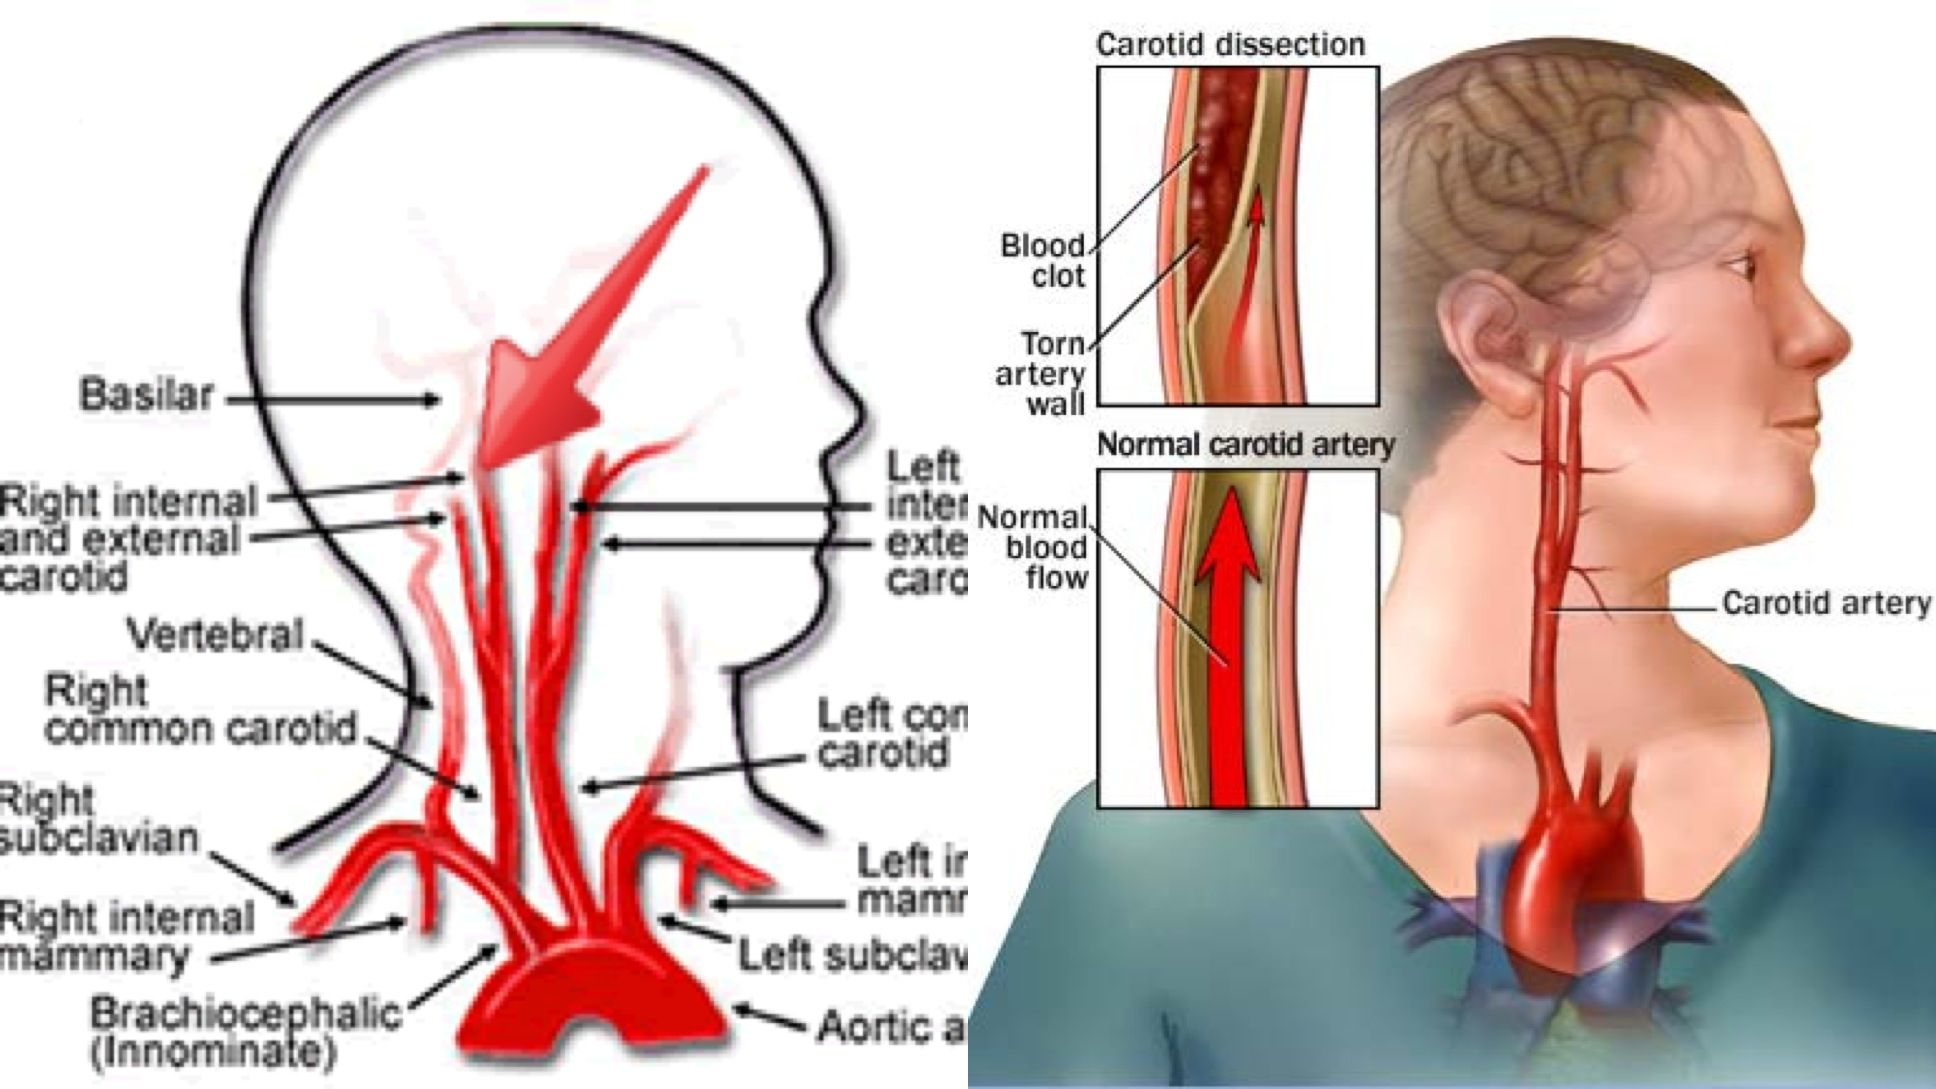 Internal Carotid Artery What is, Where is it, What does Dissection ...